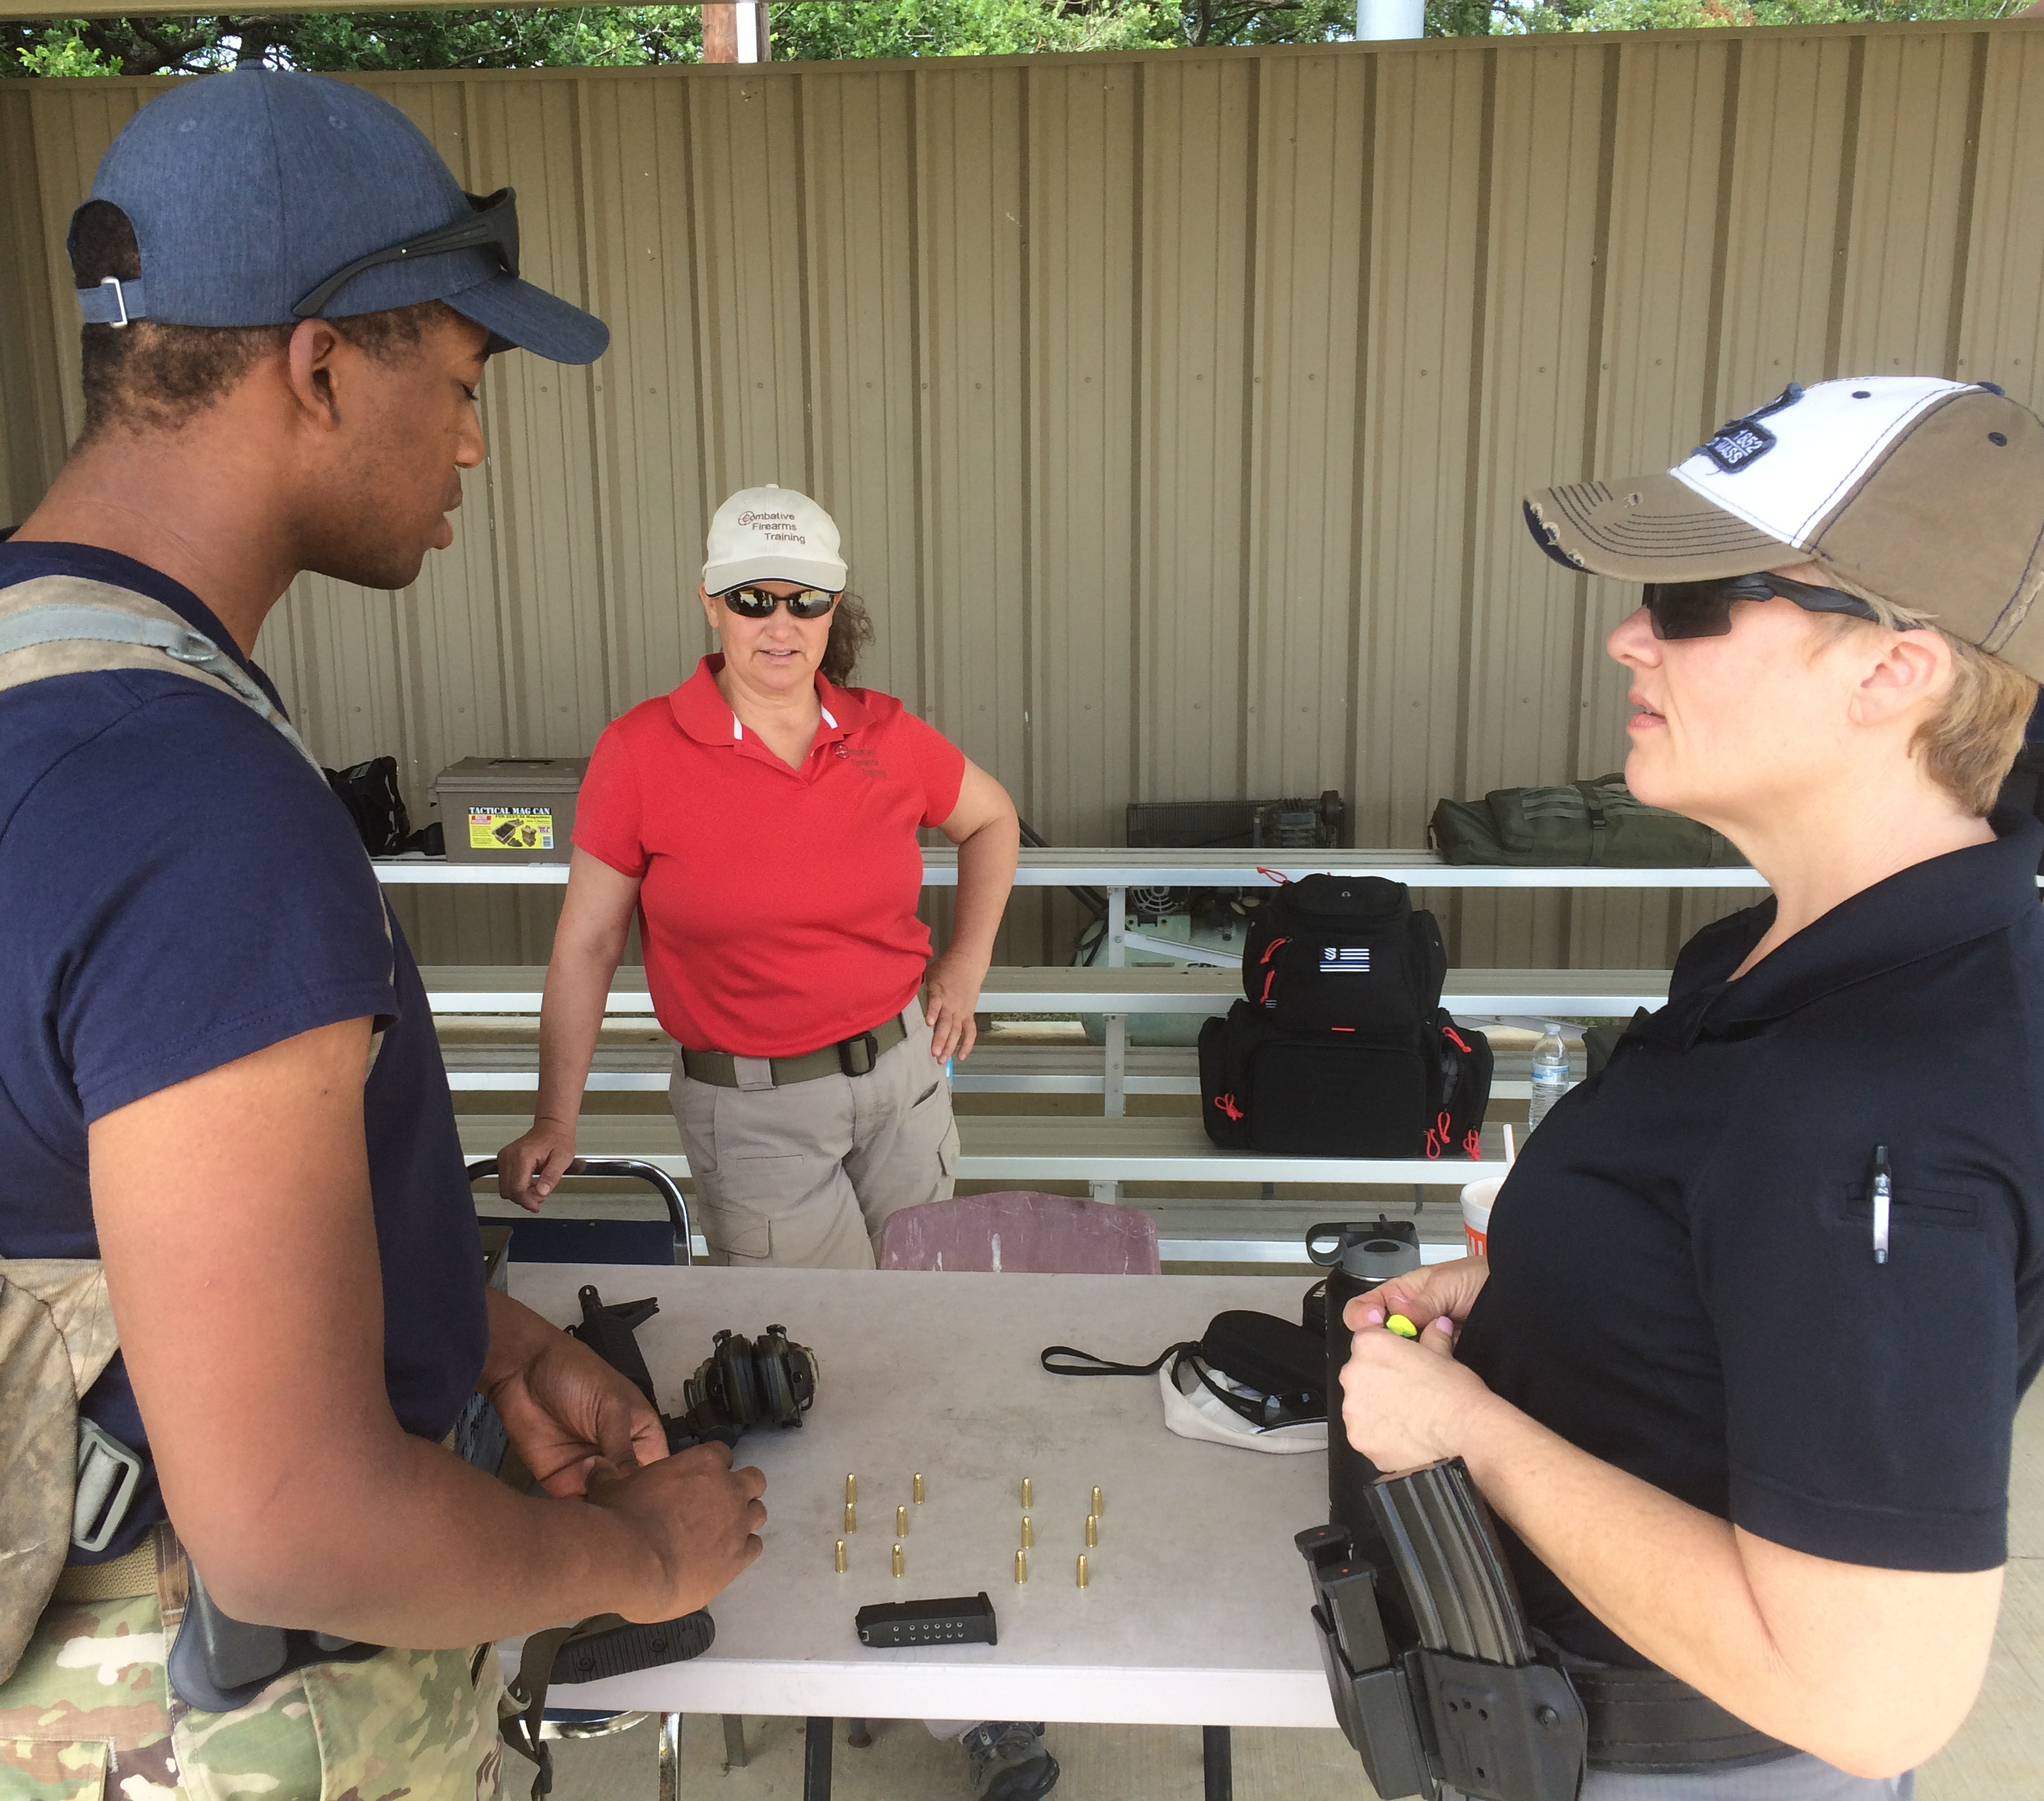 Firearms training and equipment for female police officers